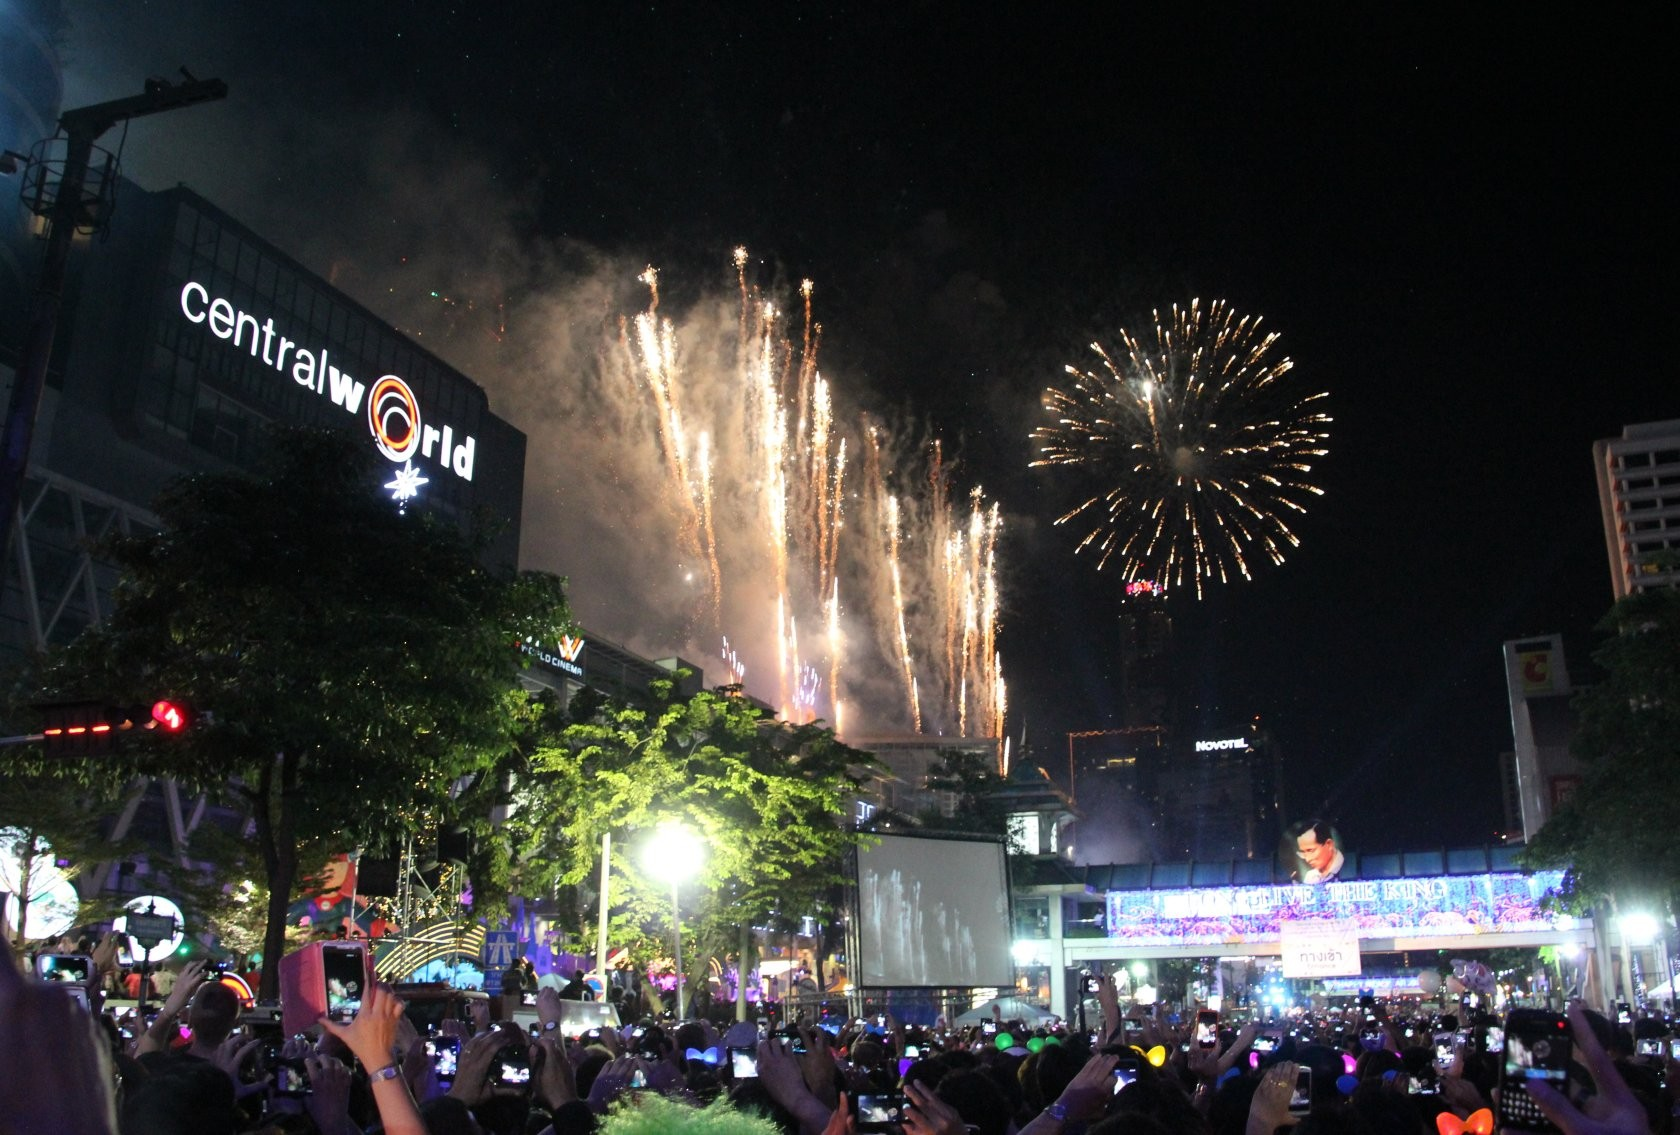 Bangkok - New Year Celebrations am Central World/Siam XII